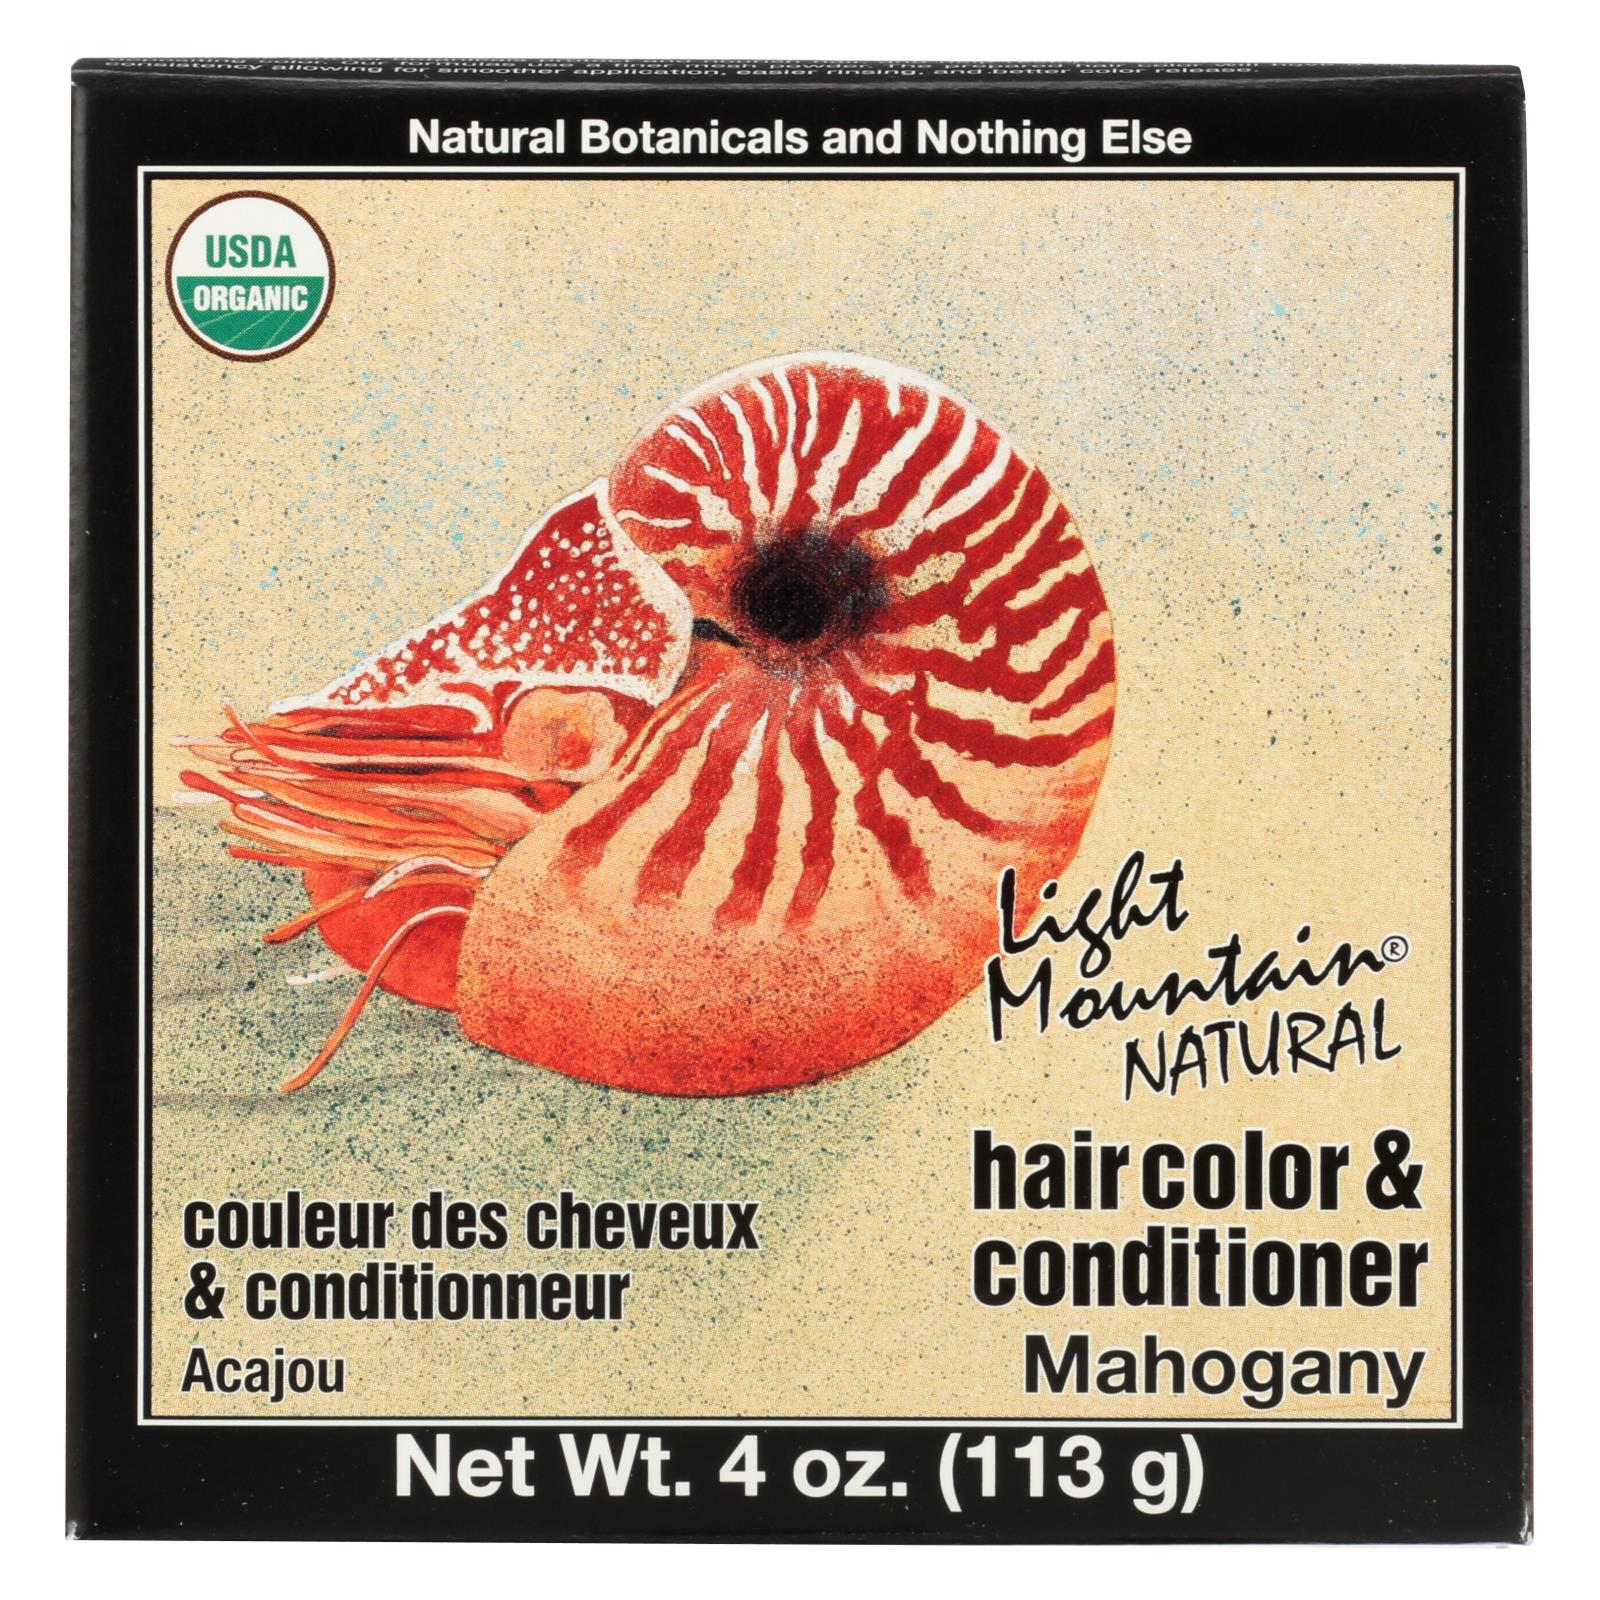 Buy Light Mountain Hair Color - Mahogany - Case of 1 - 4 oz. - Hair Color from Veroeco.com